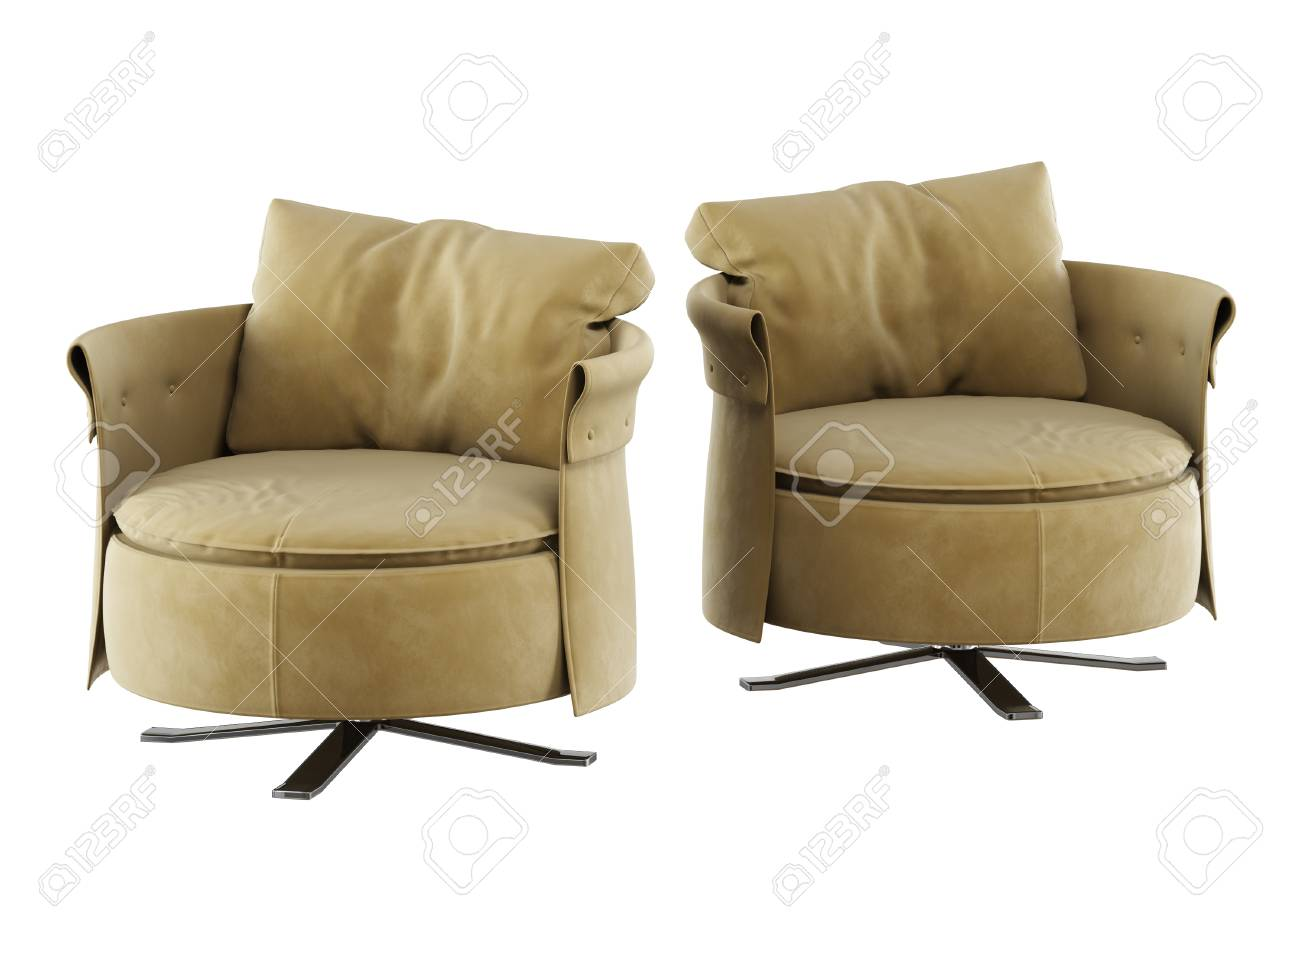 photo two round soft armchair 3d rendering on white backgraund